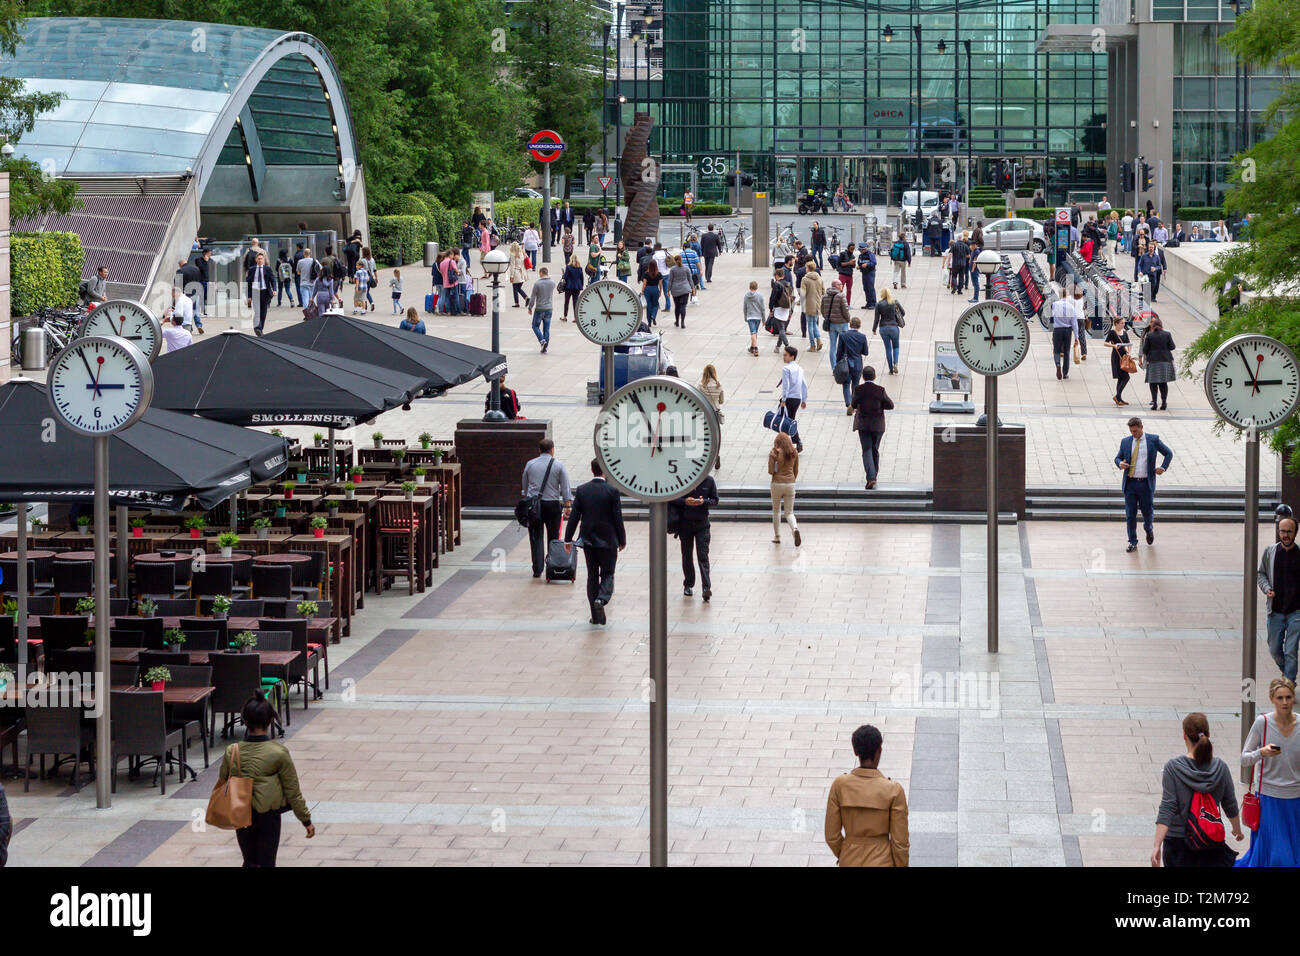 LONDON, ENGLAND - AUGUST 27 2015: Commuters walking through Reuters Plaza, Canary Wharf, London past the 'Six Public Clocks' by Konstantin Grcic - Stock Image